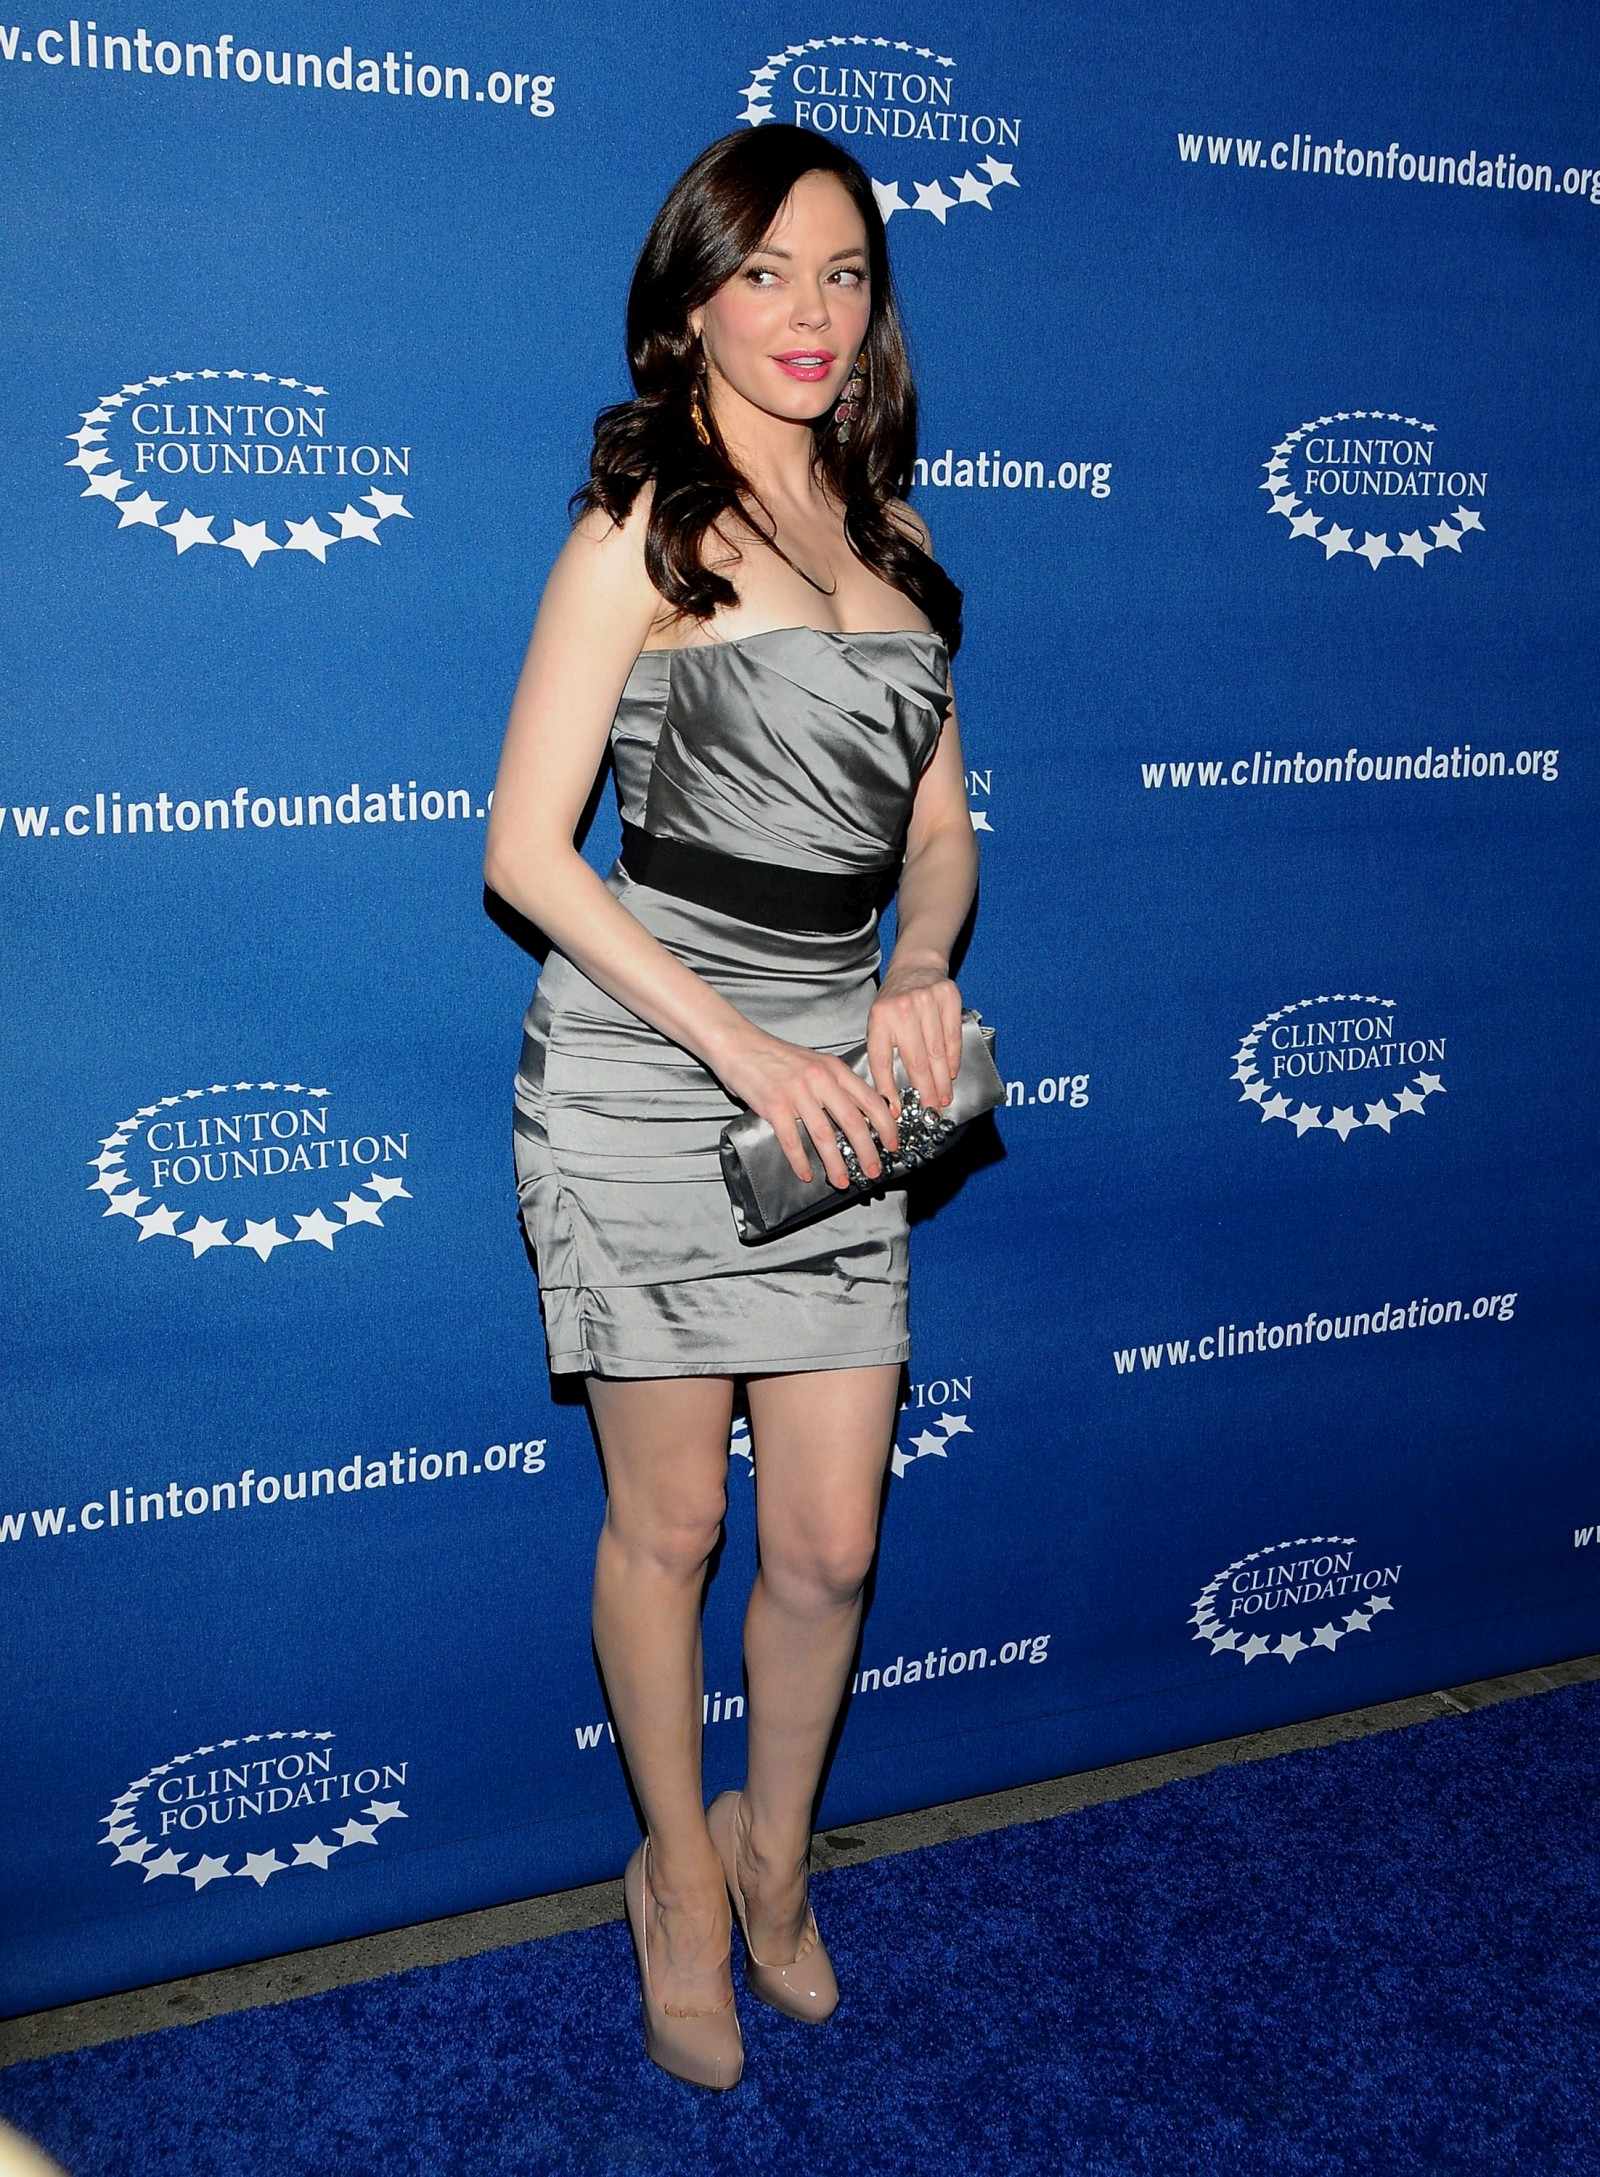 751836167_Rose_McGowan_Millennium_Network_Event_in_Hollywood_March_17_2011_09_122_356lo.jpg